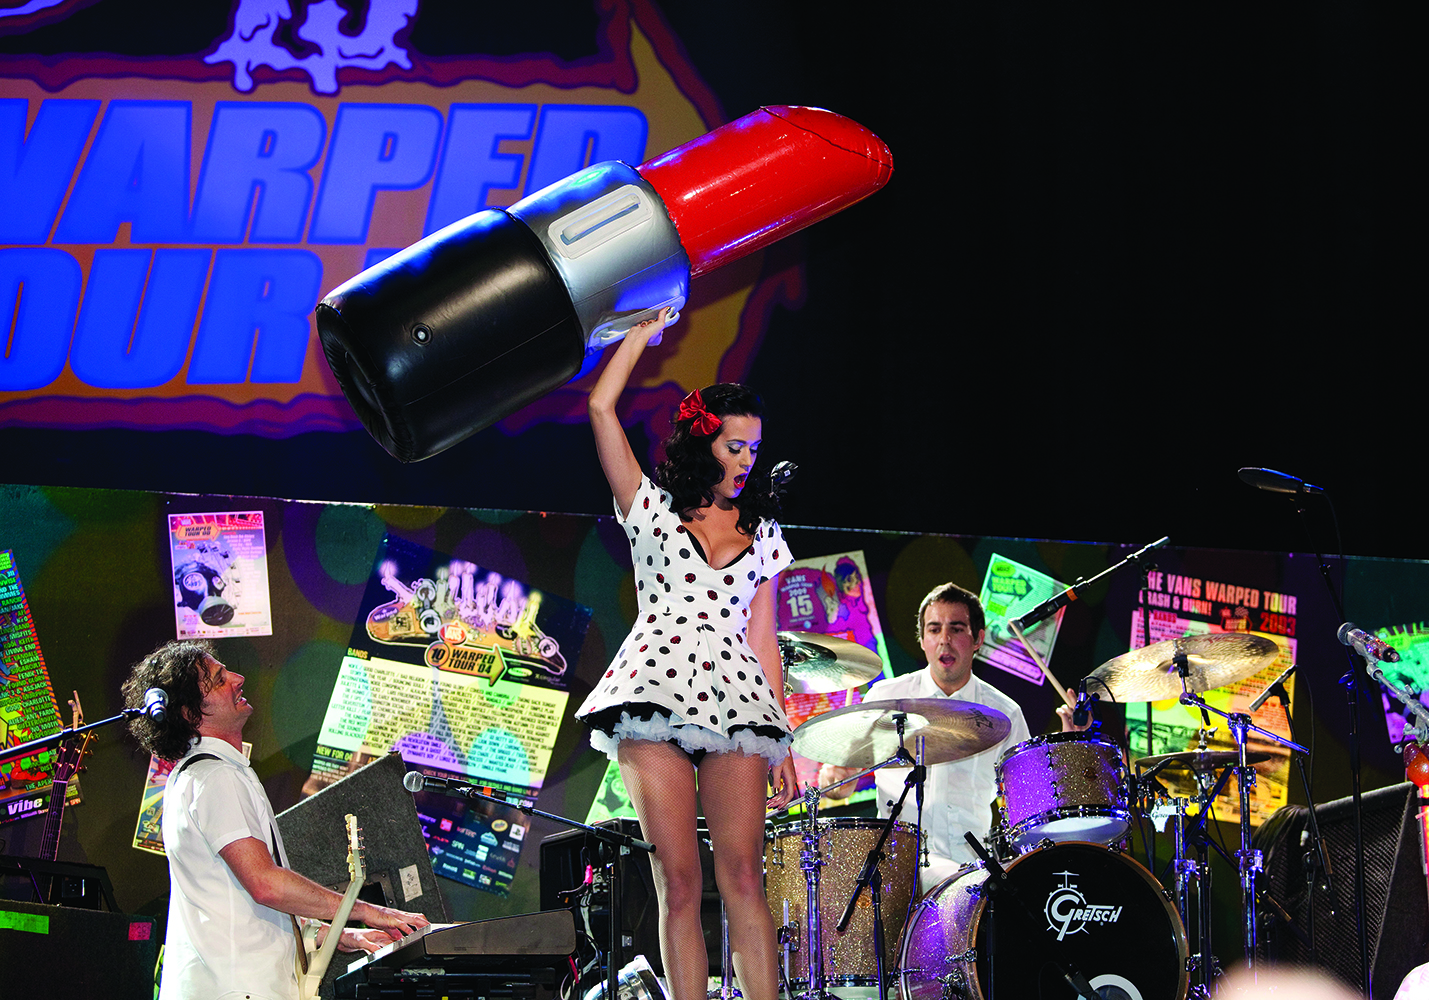 Sept. 06 2009: Katy Perry performs at the Vans Warped Tour 15th Anniversary Celebration at Club Nokia in Los Angeles, CA. (Photo by Paul Hebert/Icon SMI/Corbis/Icon Sportswire via Getty Images)